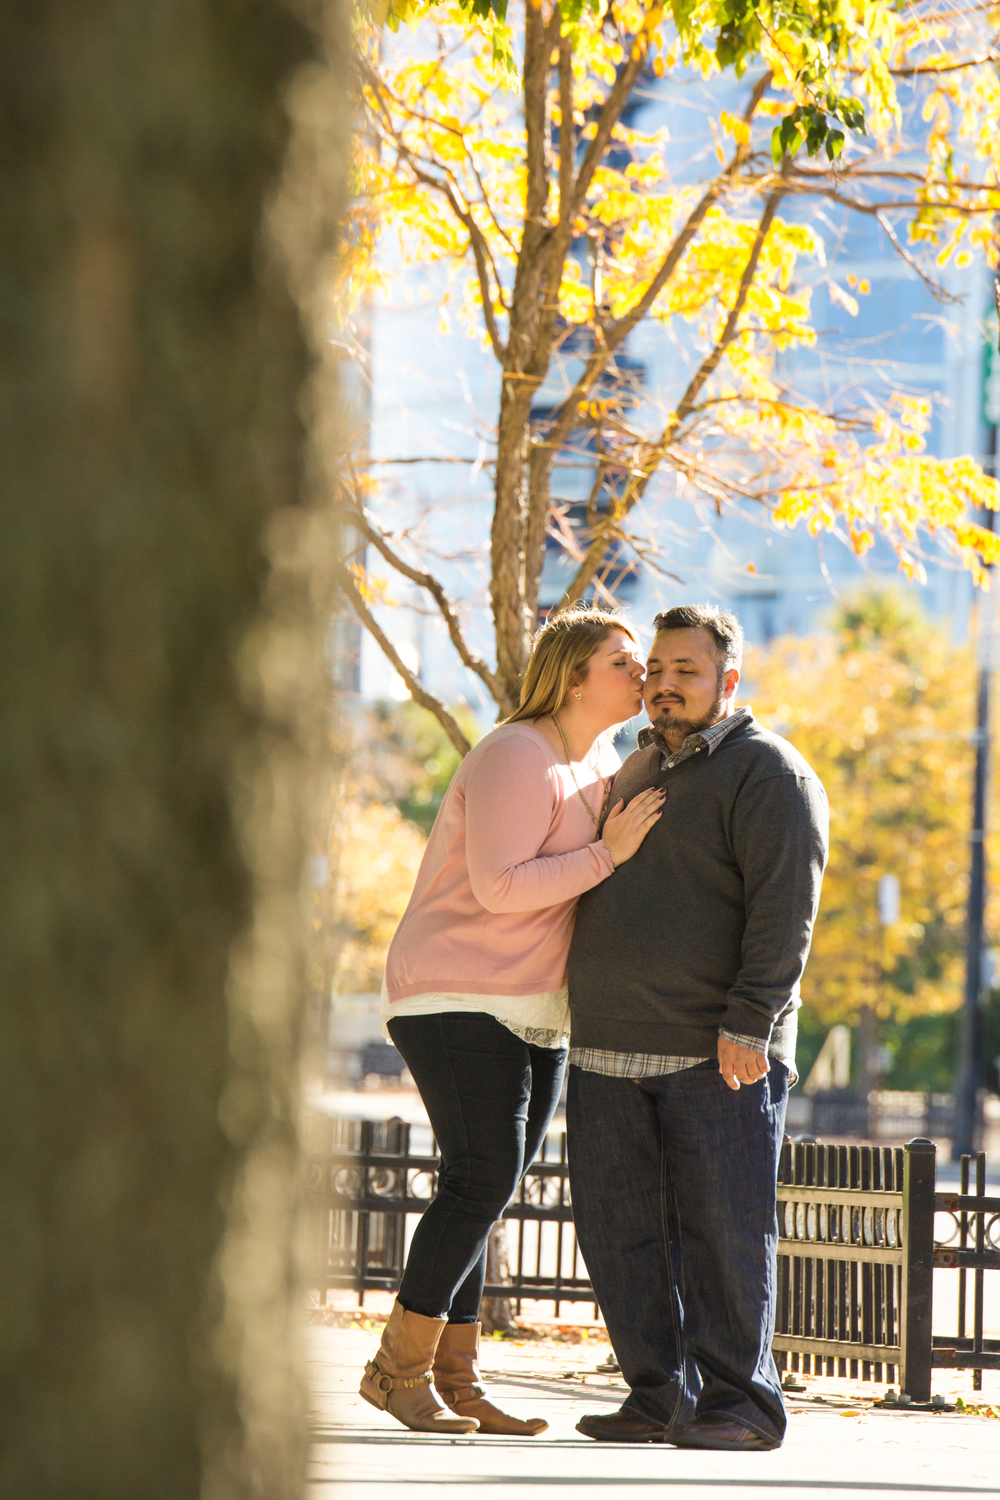 Nickie & Hector_Chicago Engagement_Oct 2015 (28 of 44).jpg